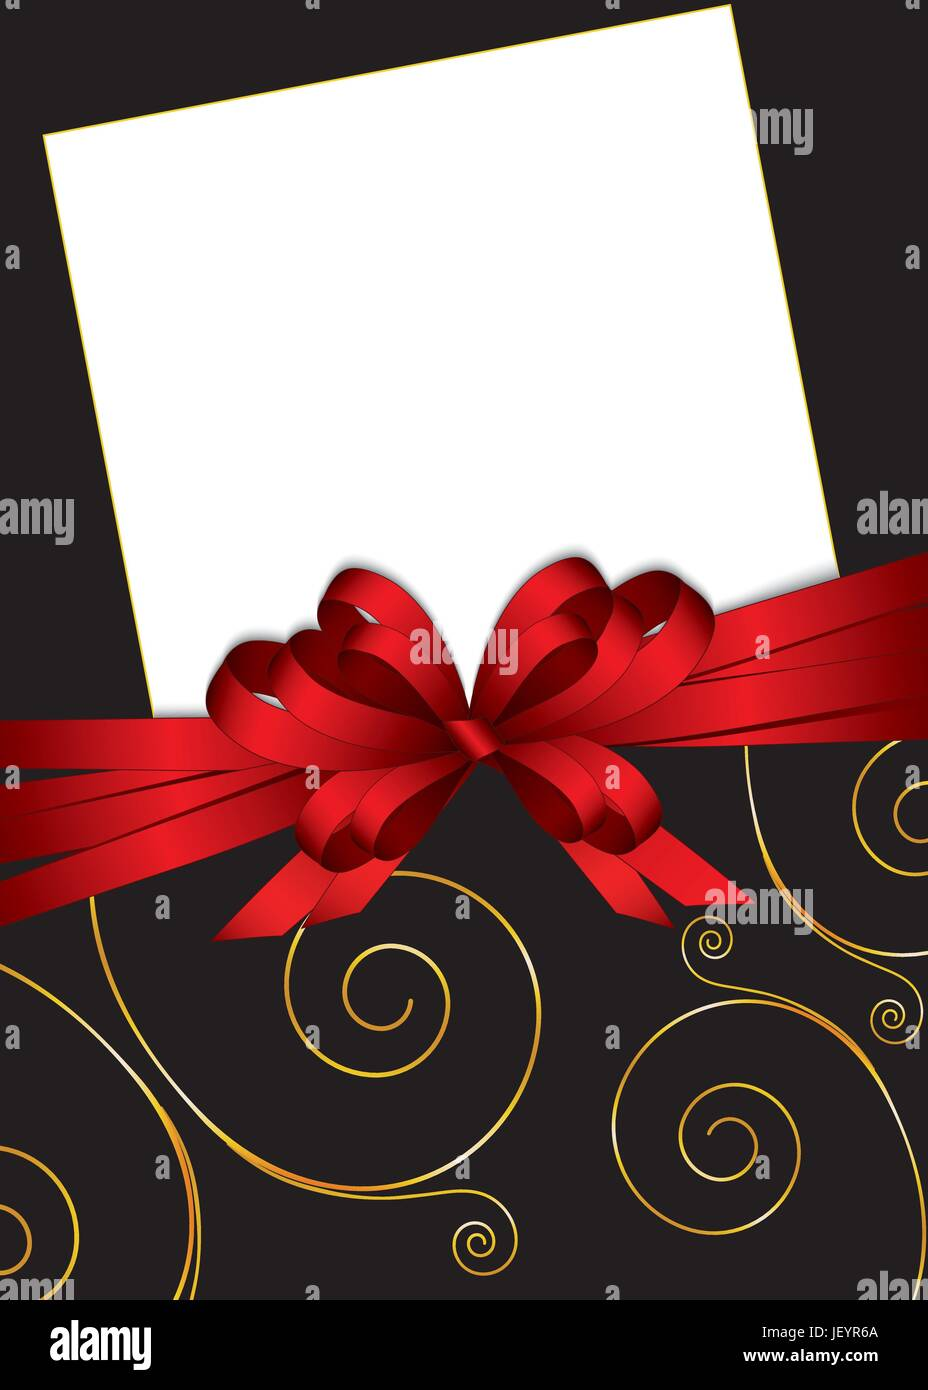 Greeting holiday graphic wedding marriage marriage ceremony greeting holiday graphic wedding marriage marriage ceremony wedding m4hsunfo